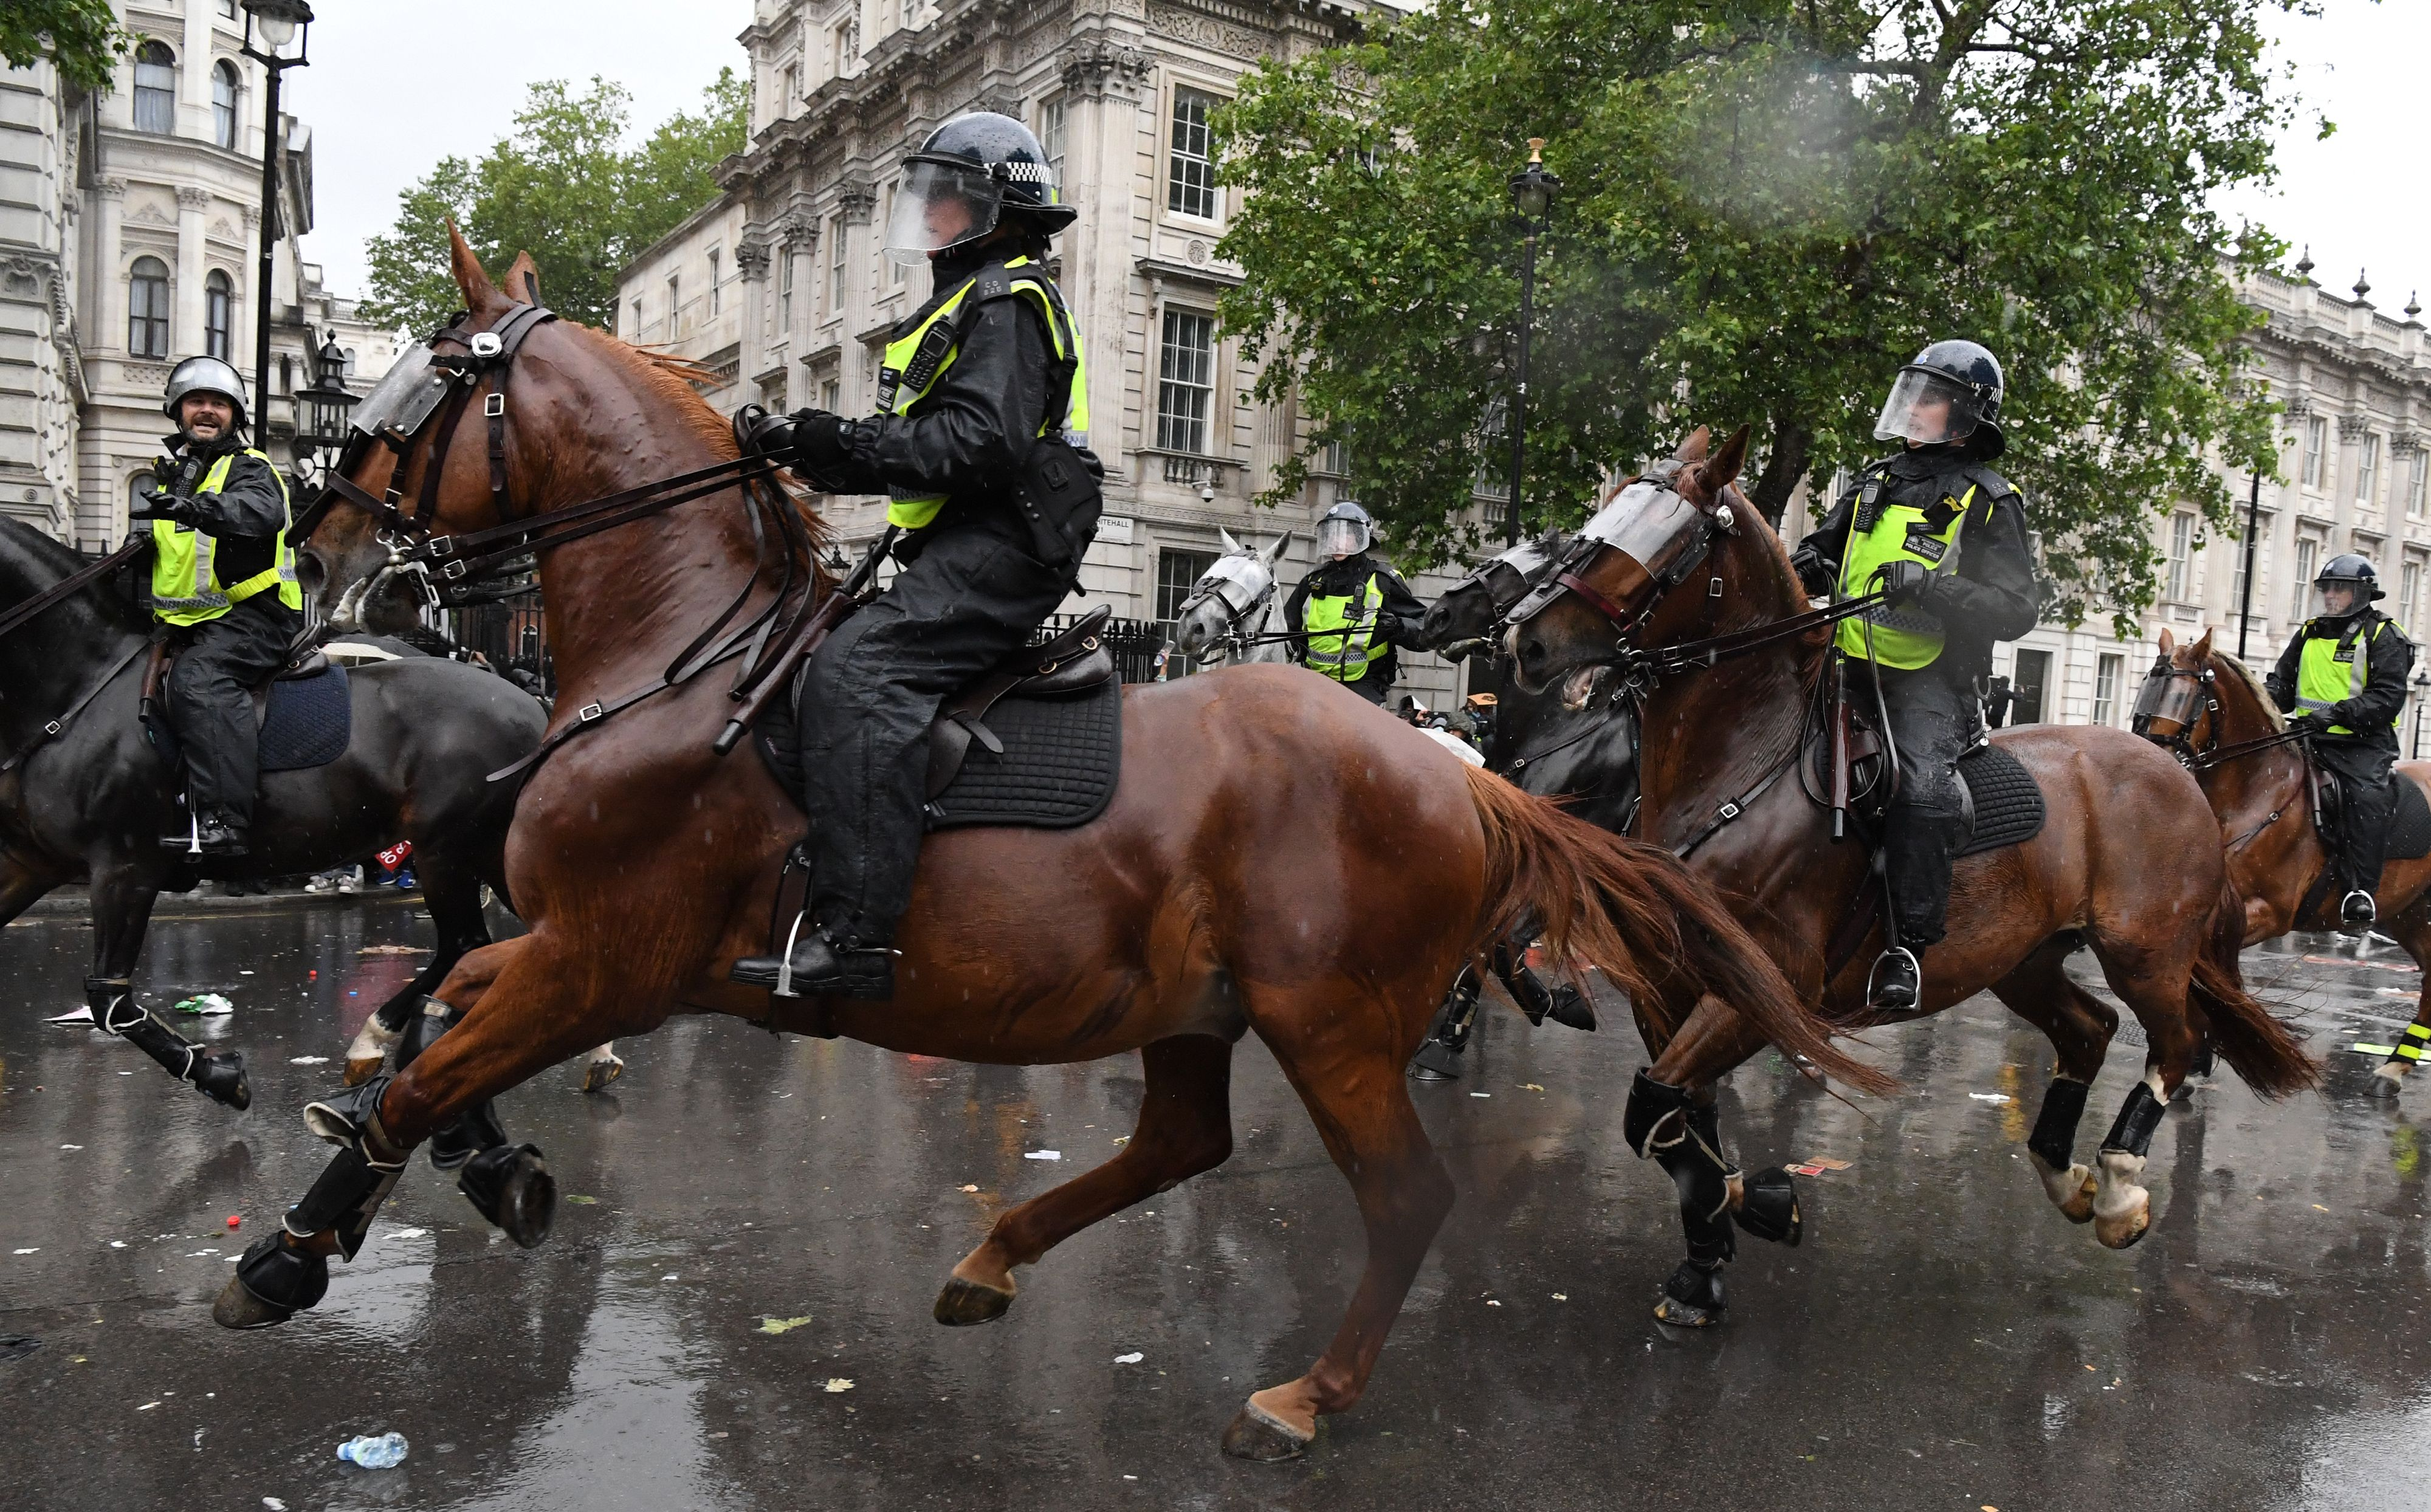 """Mounted police officers charge their horses along Whitehall, past the entrance to Downing Street, in an attempt to disperse protestors gathered in central London on June 6, 2020, during a demonstration to show solidarity with the Black Lives Matter movement in the wake of the killing of George Floyd, an unarmed black man who died after a police officer knelt on his neck in Minneapolis. - The United States braced Friday for massive weekend protests against racism and police brutality, as outrage soared over the latest law enforcement abuses against demonstrators that were caught on camera. With protests over last week's police killing of George Floyd, an unarmed black man, surging into a second weekend, President Donald Trump sparked fresh controversy by saying it was a """"great day"""" for Floyd. (Photo by DANIEL LEAL-OLIVAS / AFP) (Photo by DANIEL LEAL-OLIVAS/AFP via Getty Images)"""